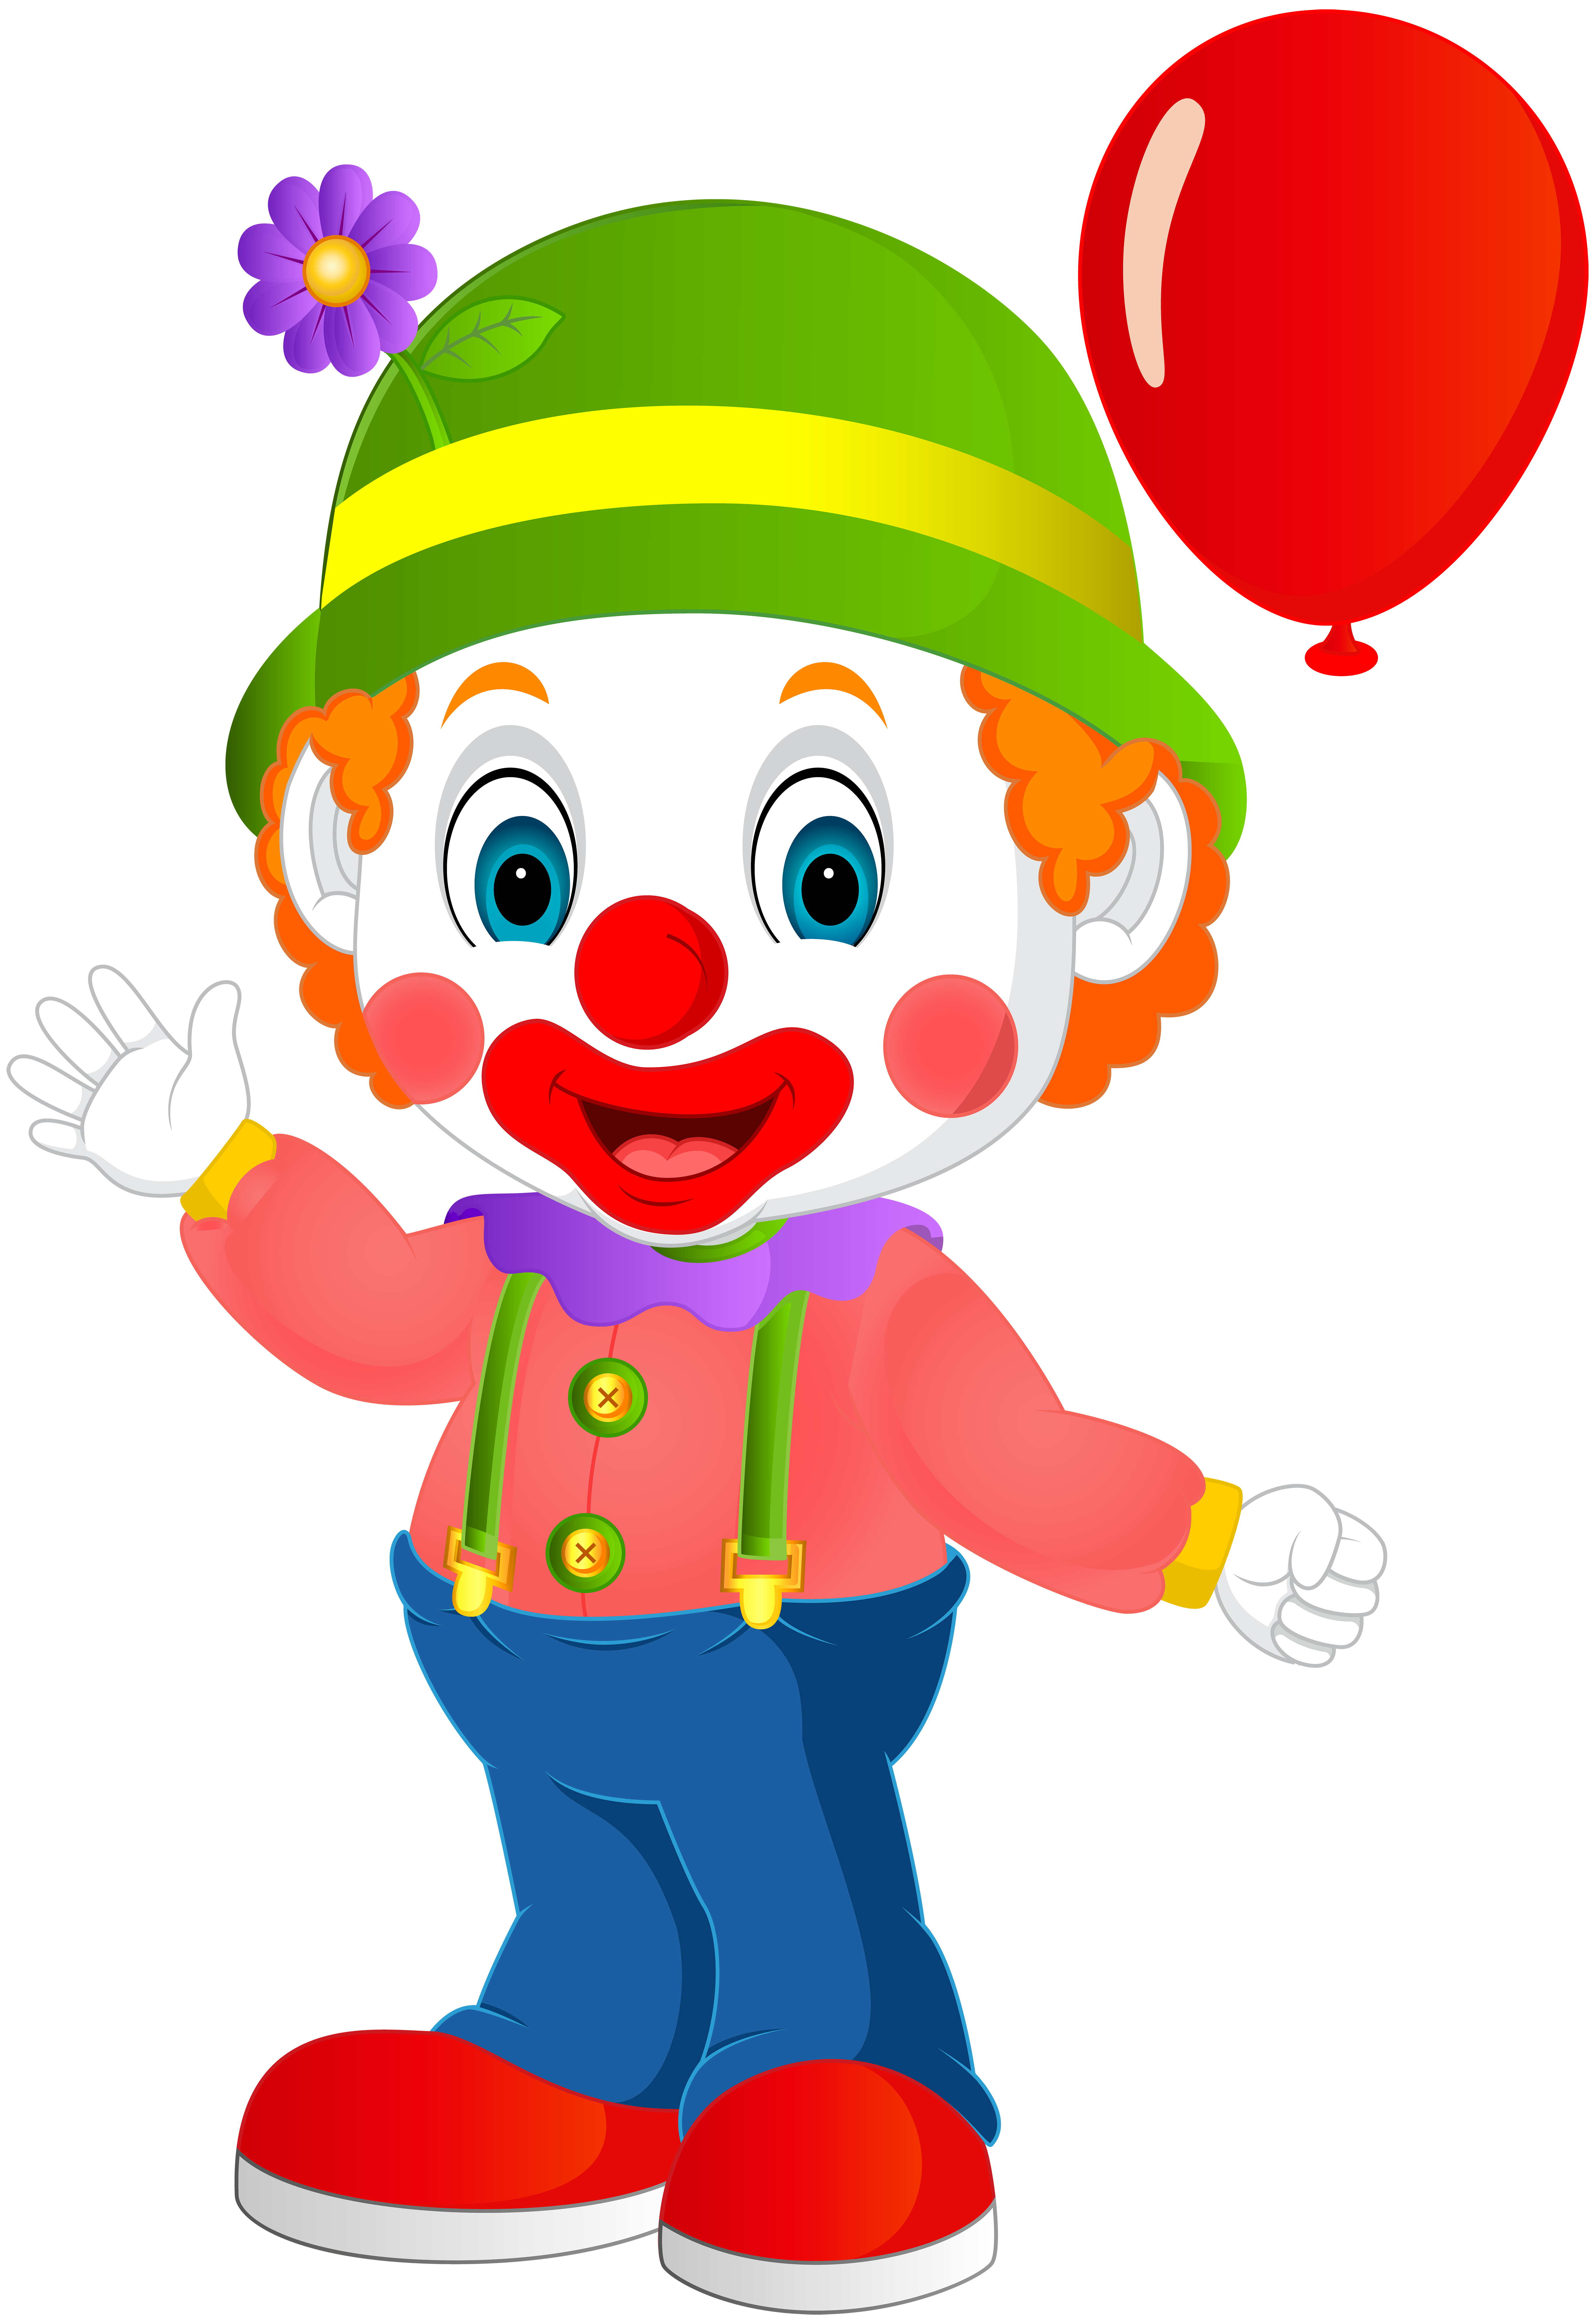 Cute transparent png clip. Clown clipart jpg library download